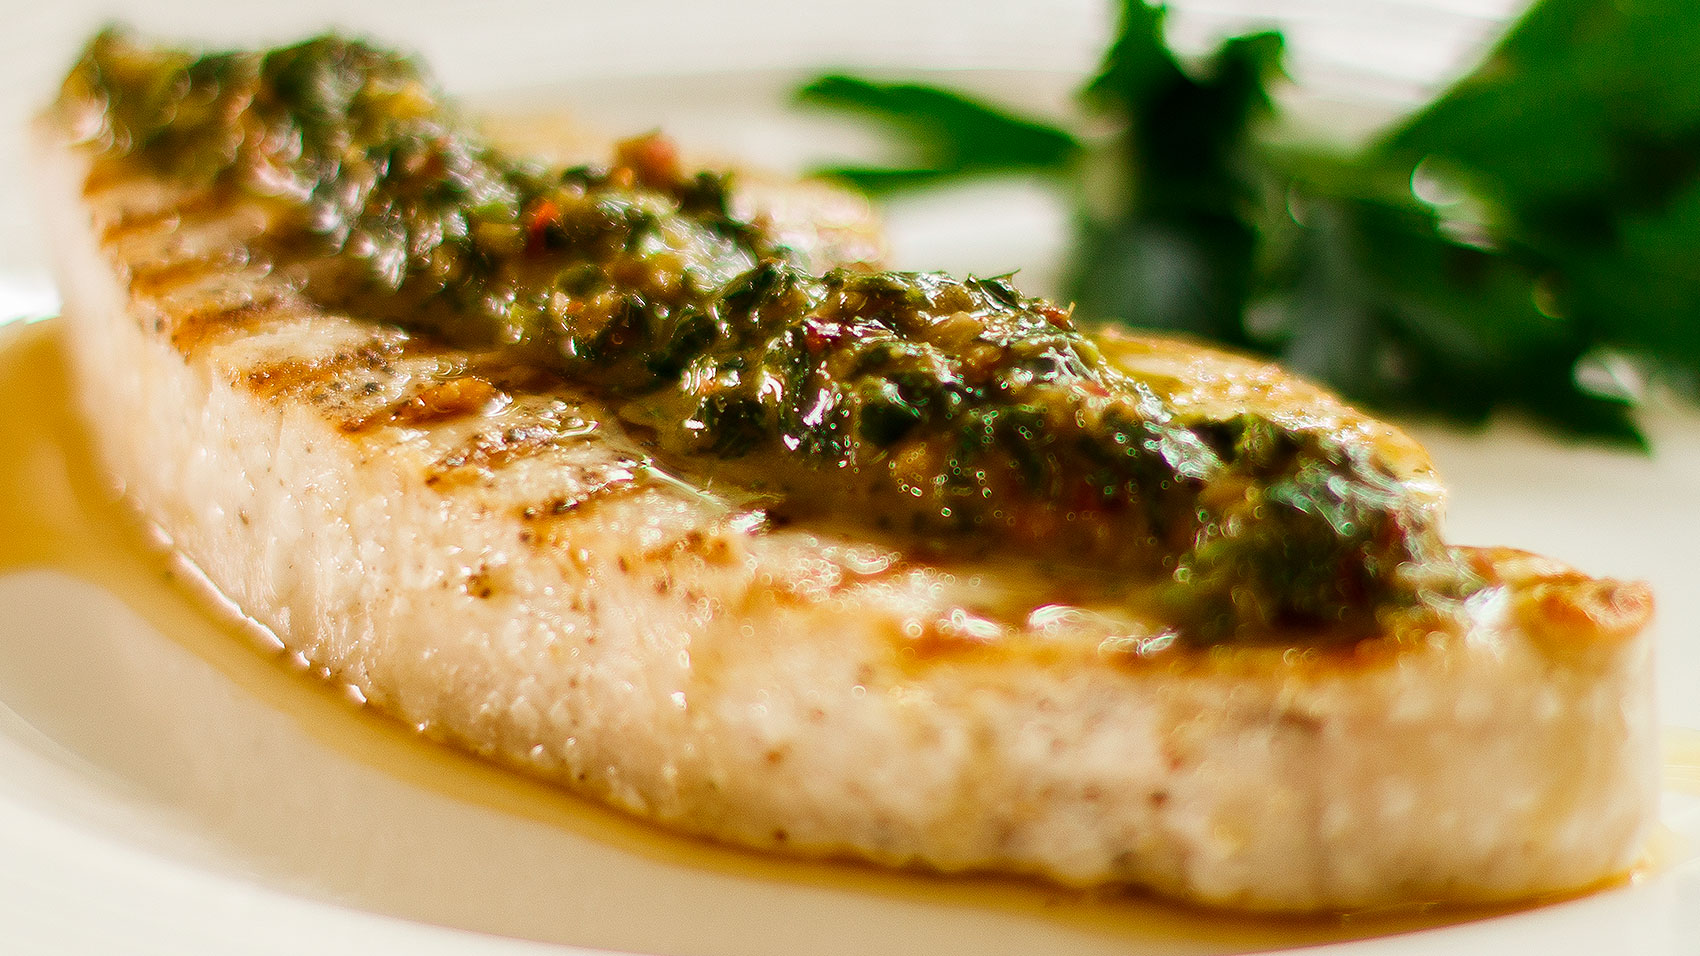 Swordfish Grilled With Chimichurri Sauce Easy Meals With Video Recipes By Chef Joel Mielle